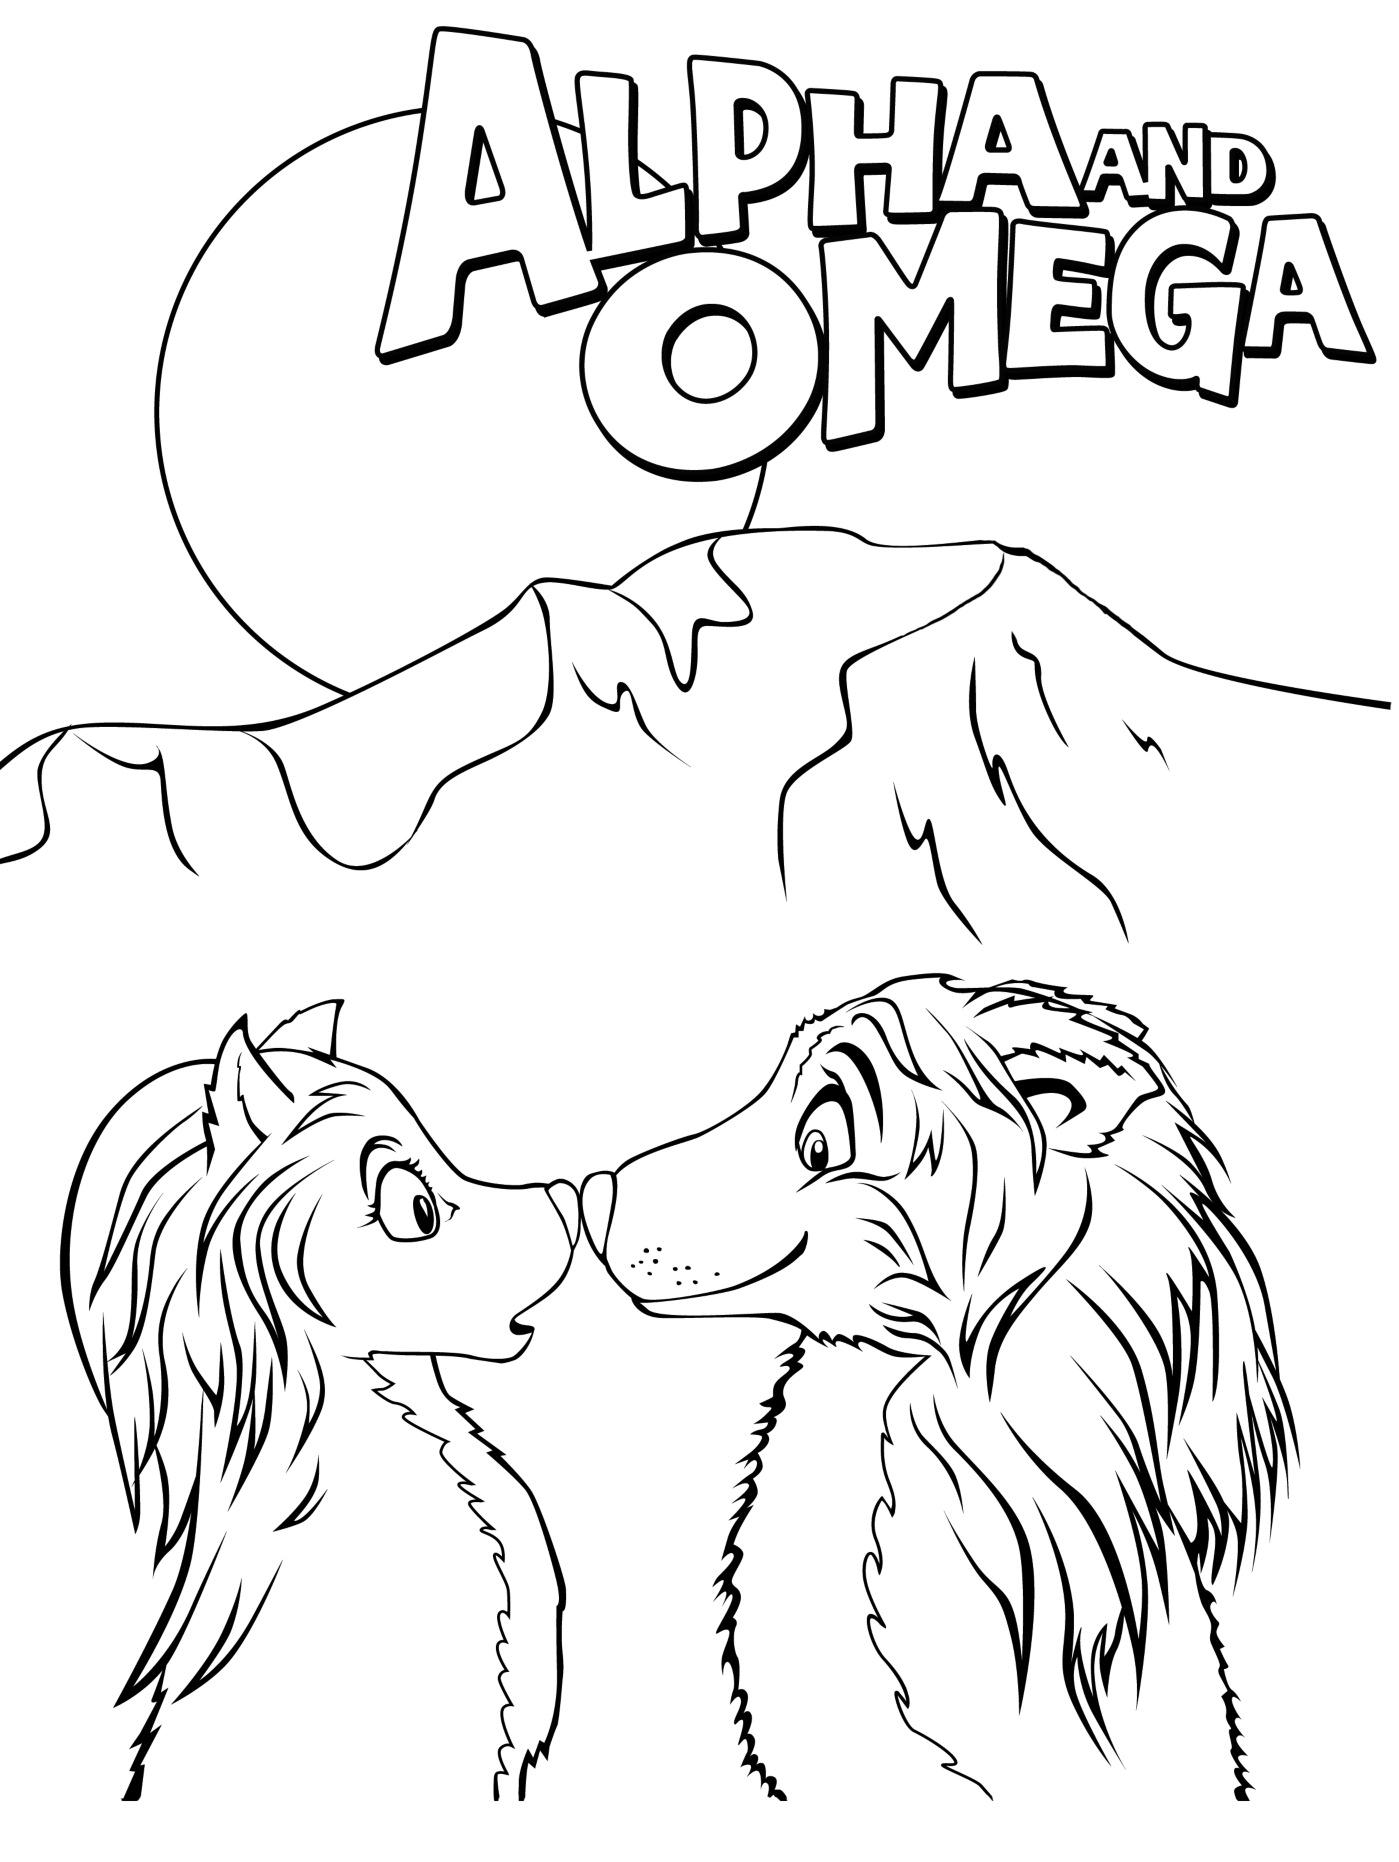 Kate and Humphrey coloring page